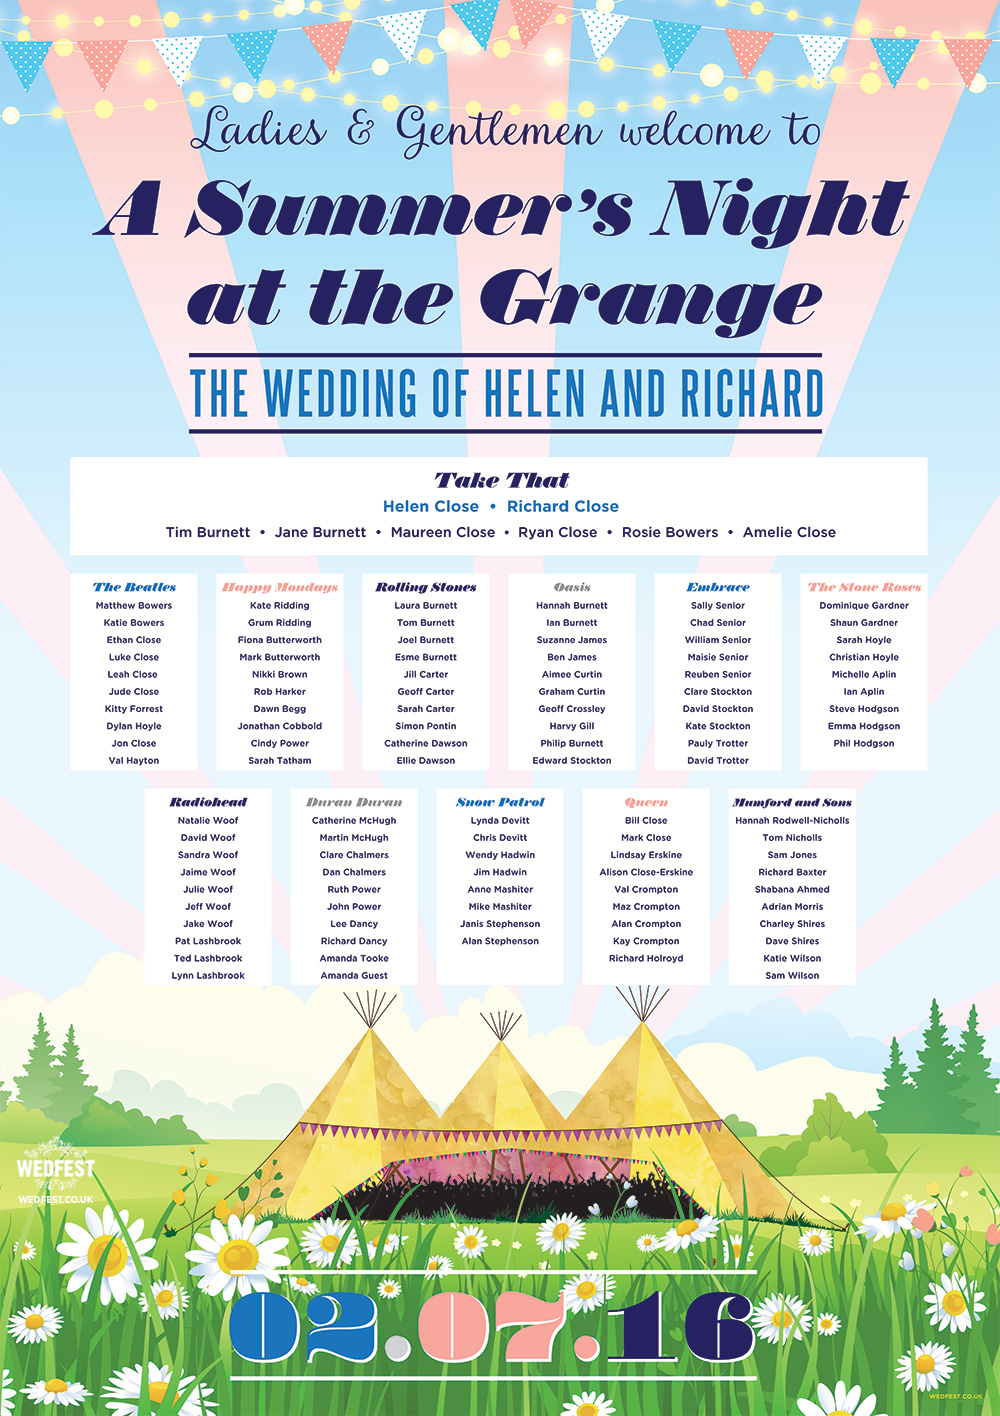 tipi teepee tent festival boho wedding seating plan